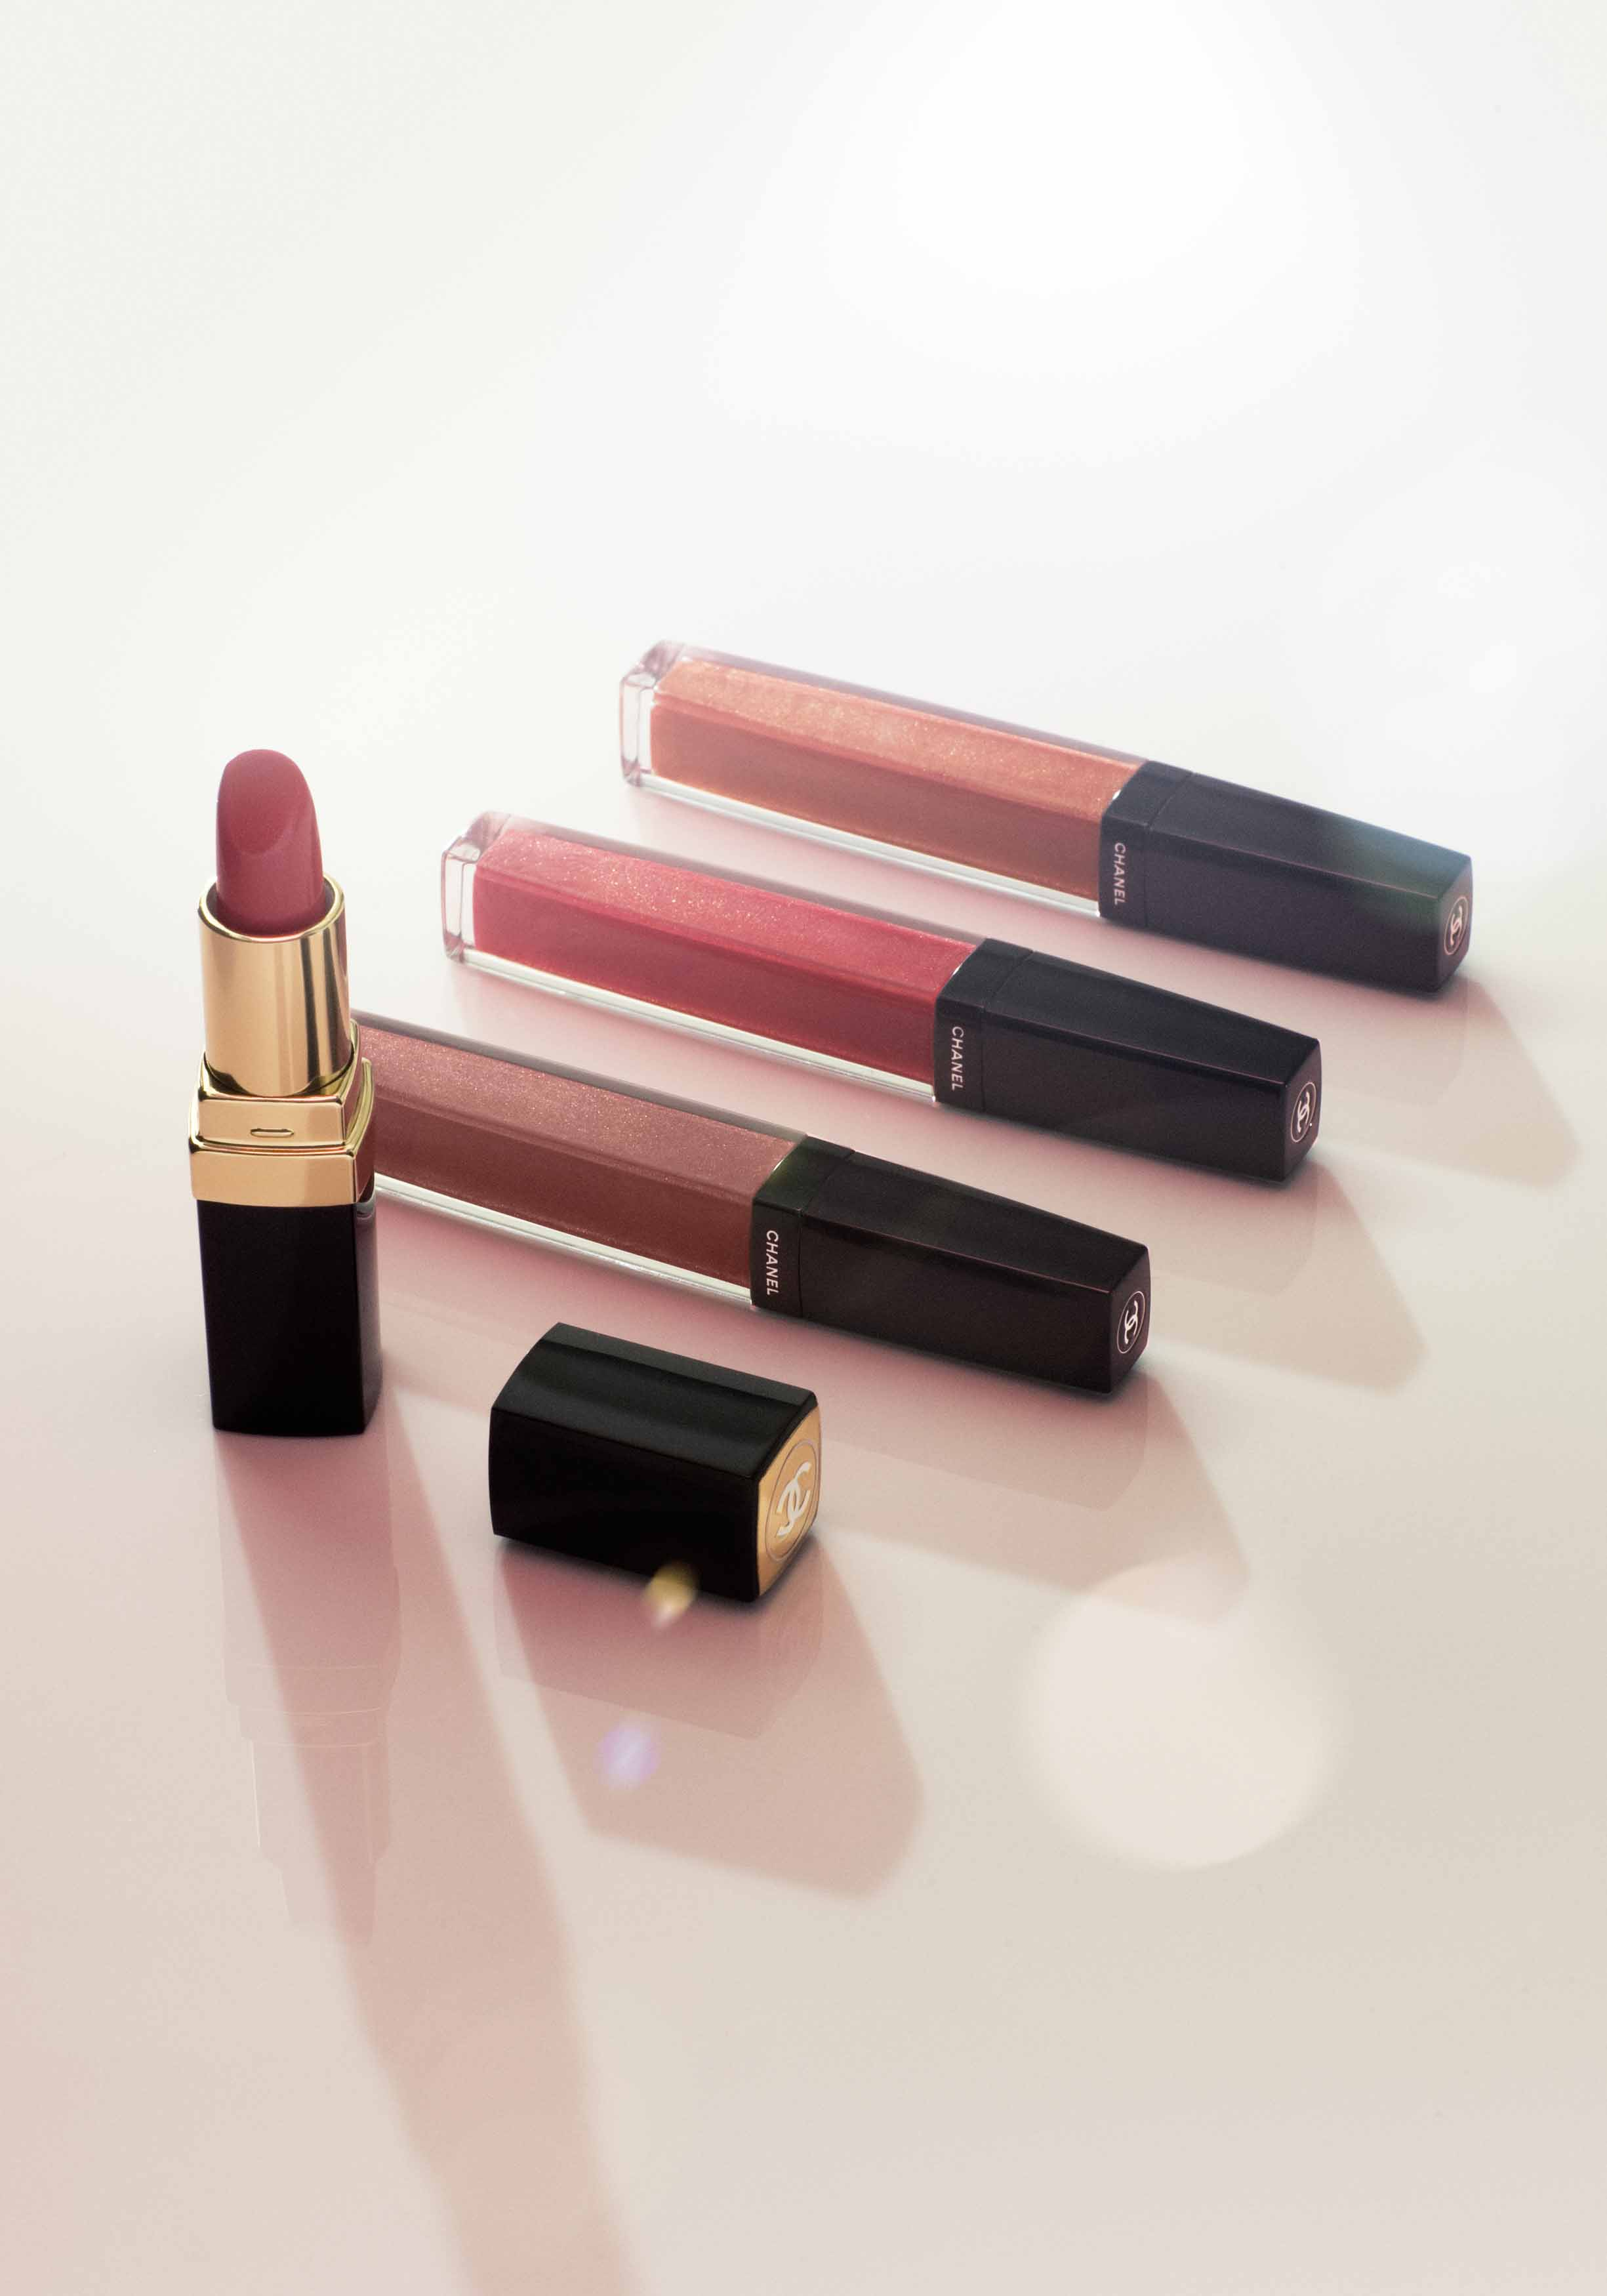 Aqualumière glosses and lipsticks